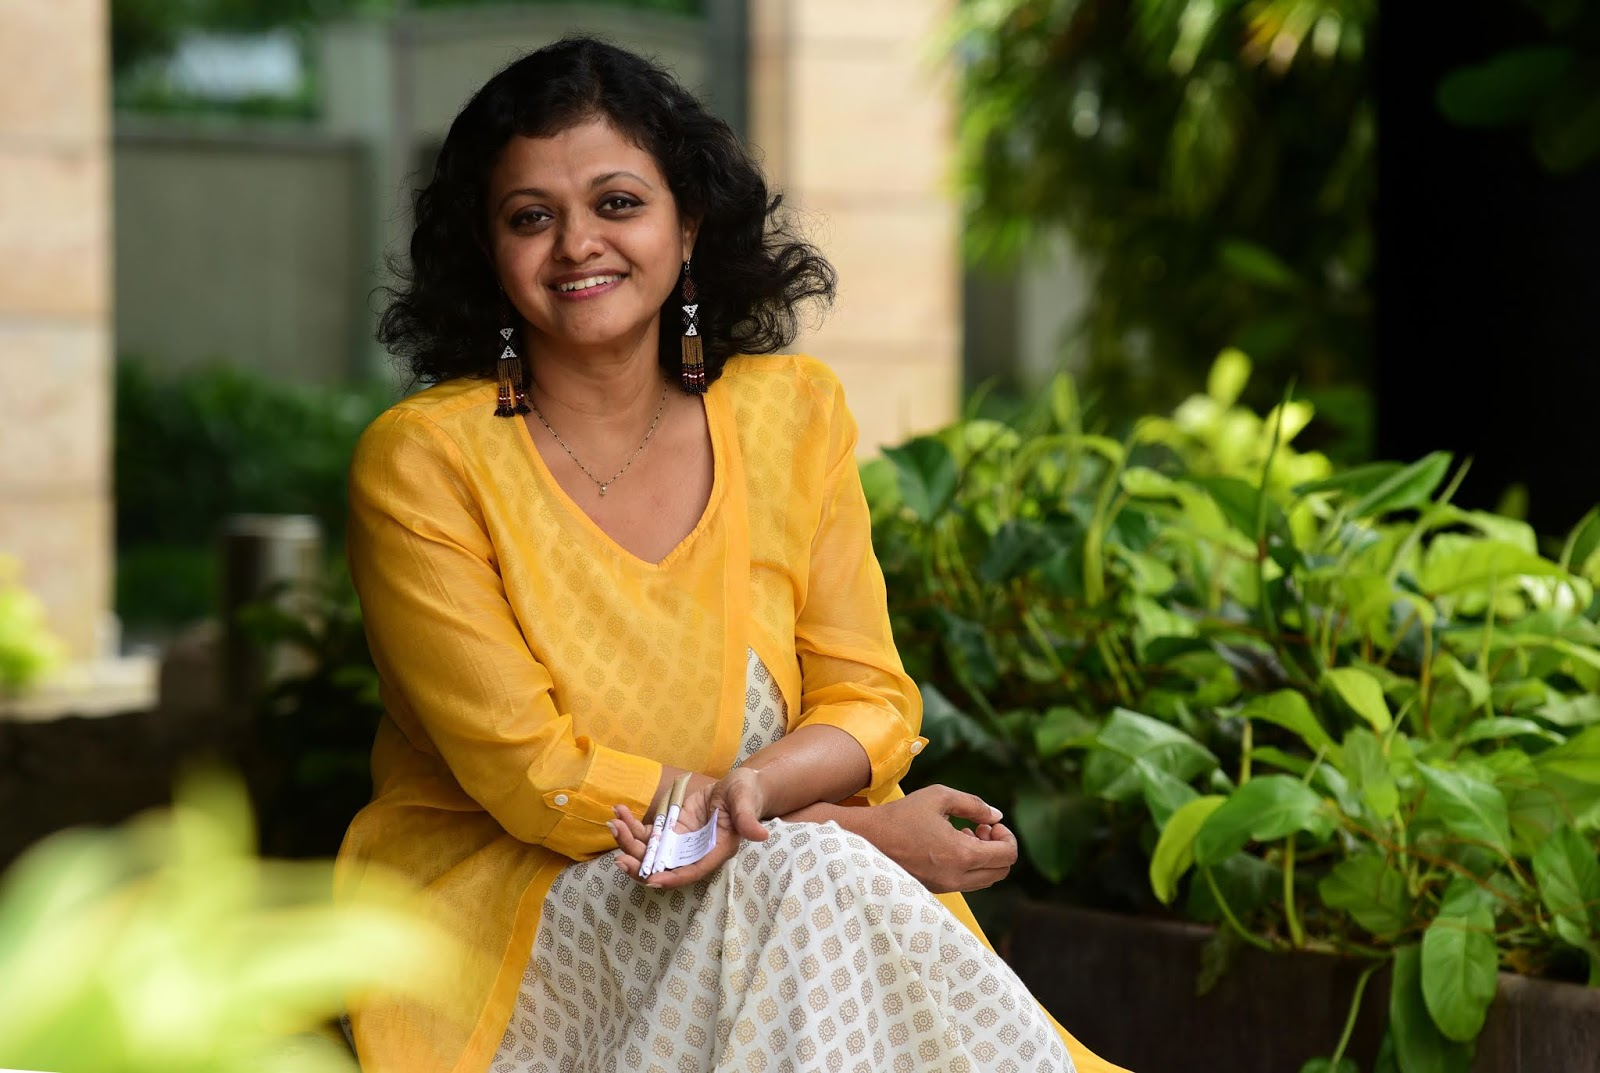 to lessen environmental damage social entrepreneur lakshmi menon has invented a paper pen which has a seed at one end instead of discarding the pen after